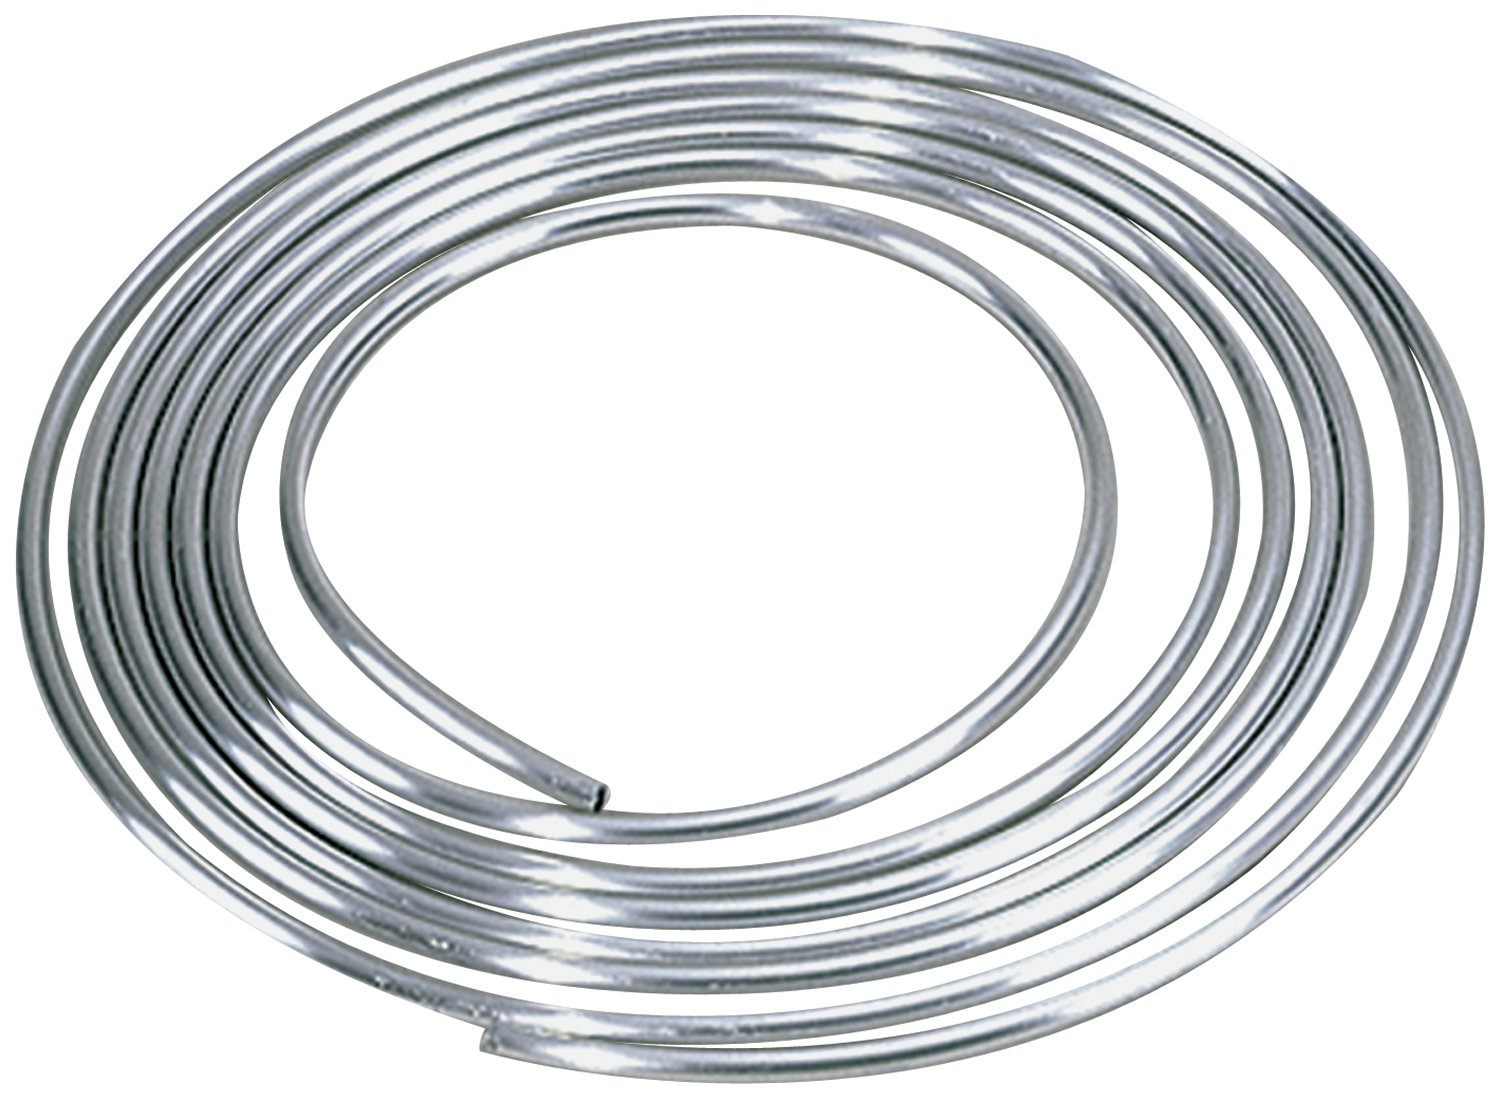 Allstar ALL40180 3/8' Diameter 25' Aluminum Coiled Tubing Fuel Line